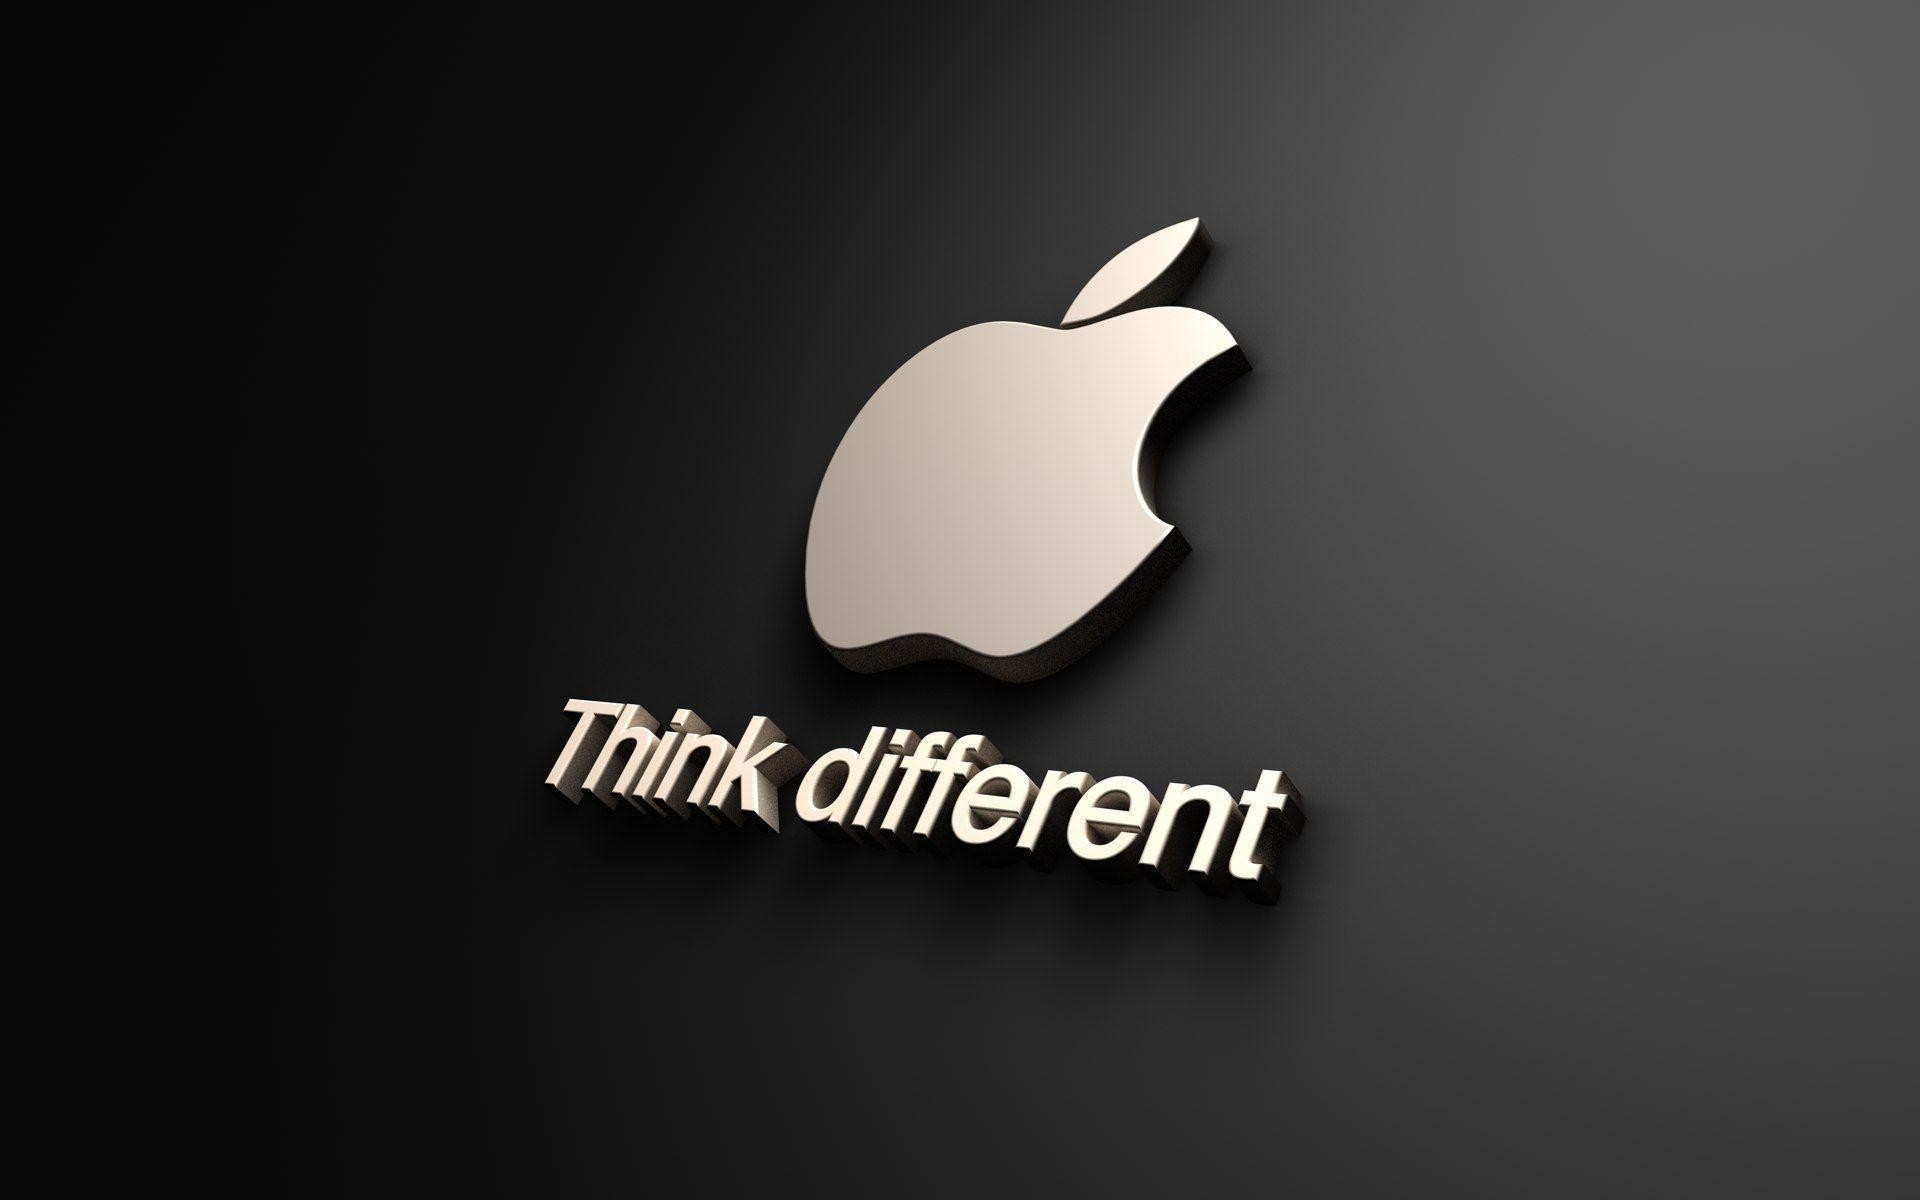 Cool Apple Logo Wallpapers 80 Background Pictures